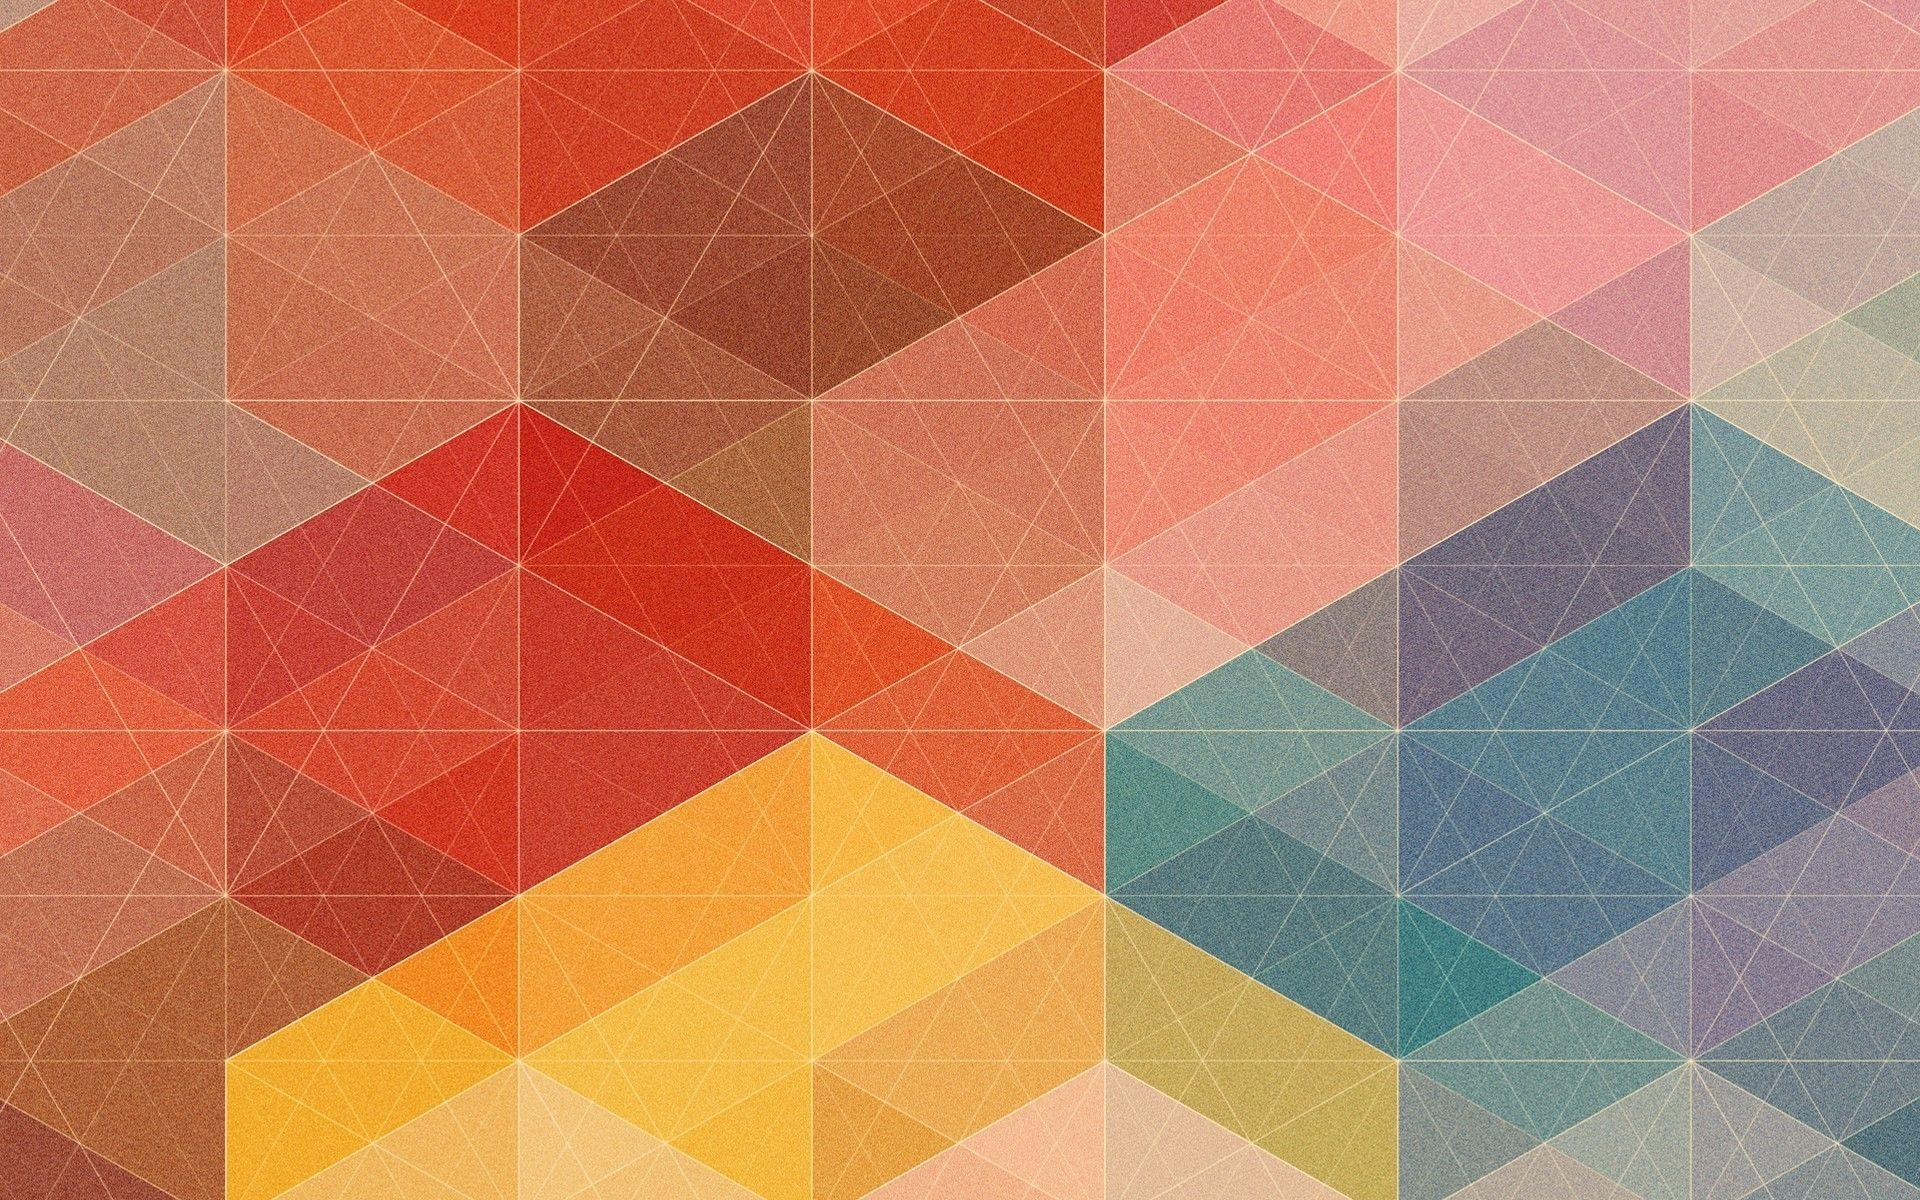 HD Polygon Wallpaper For Background | Stopimage